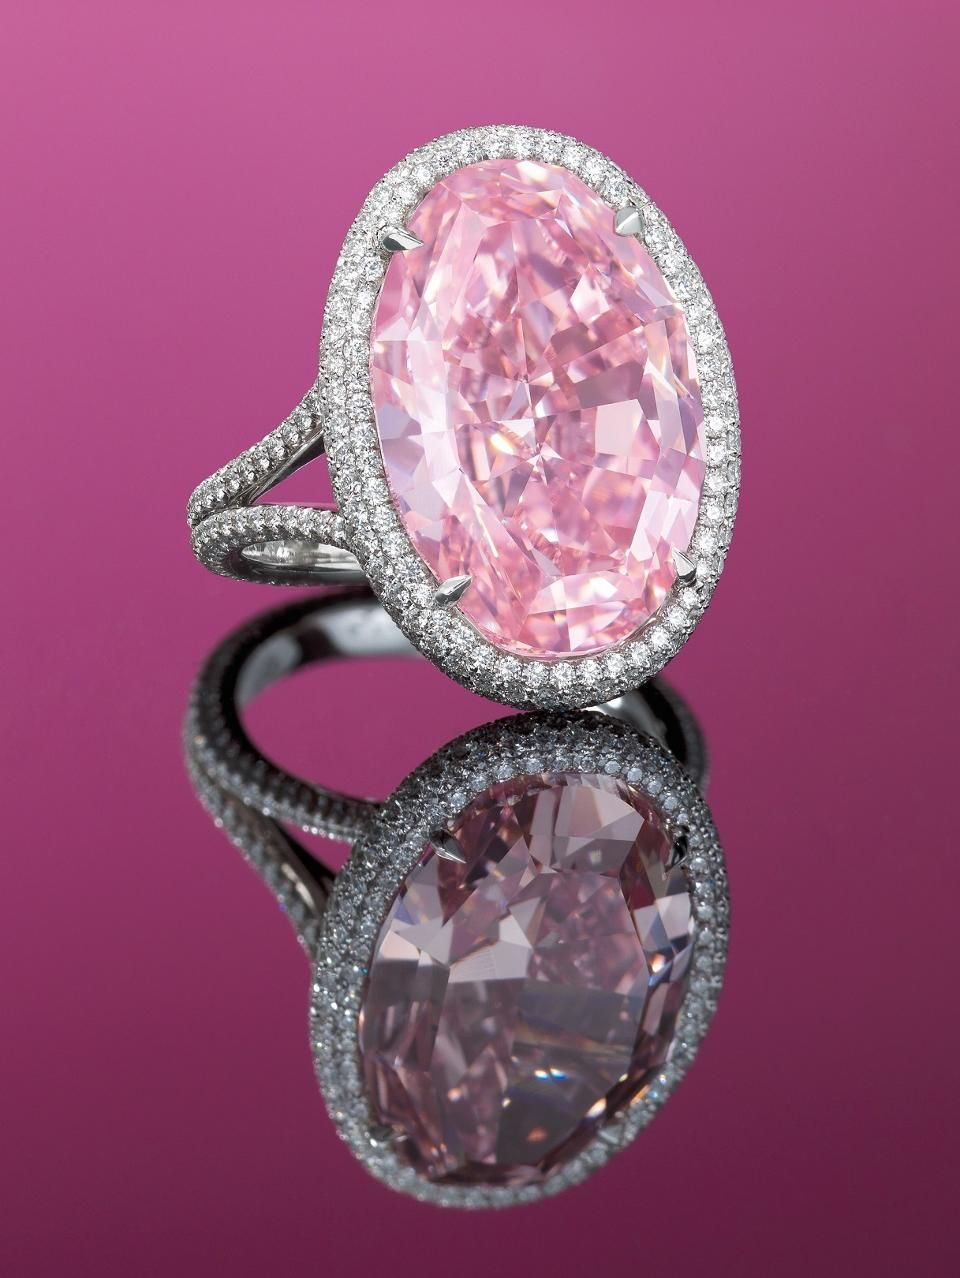 14-Carat Pink Diamond Could Fetch $42 Million At Christie\'s Hong ...